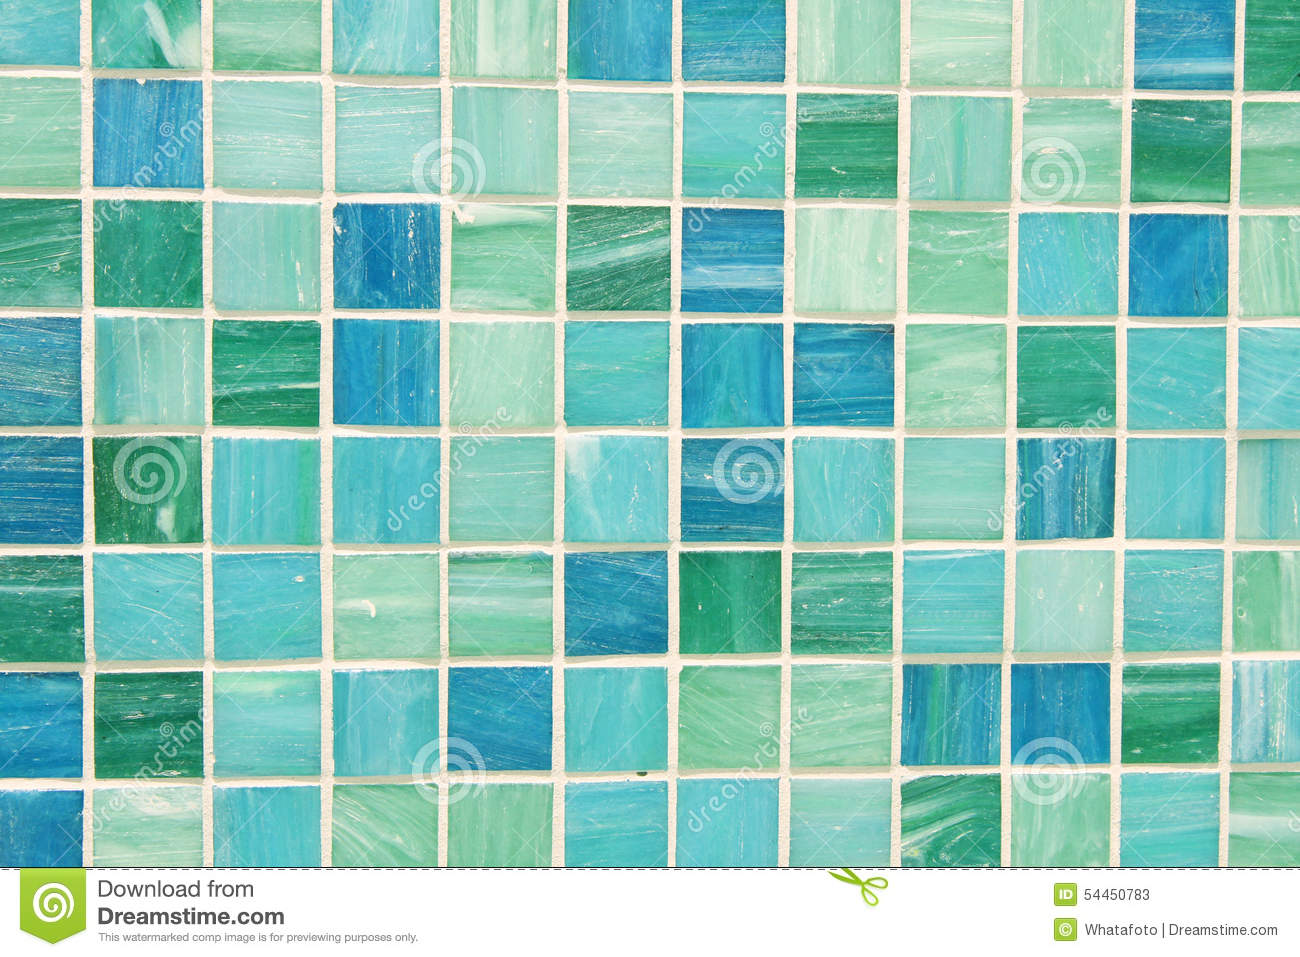 Mosaic Tiles In Green Turquoise Blue Stock Photo Image